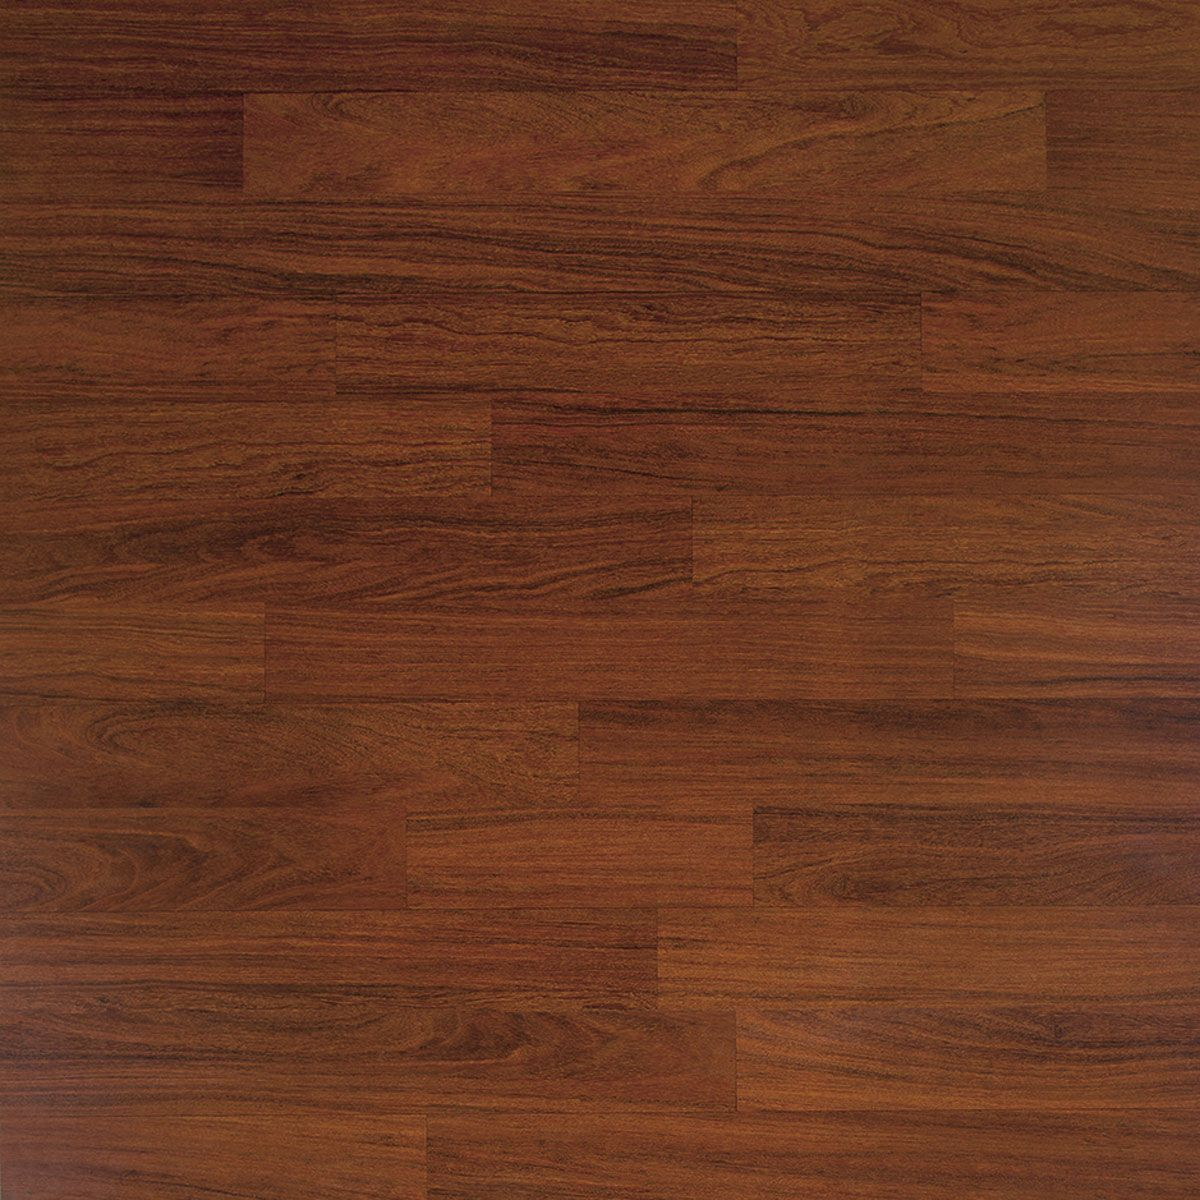 Dark hardwood flooring texture images for Printable flooring